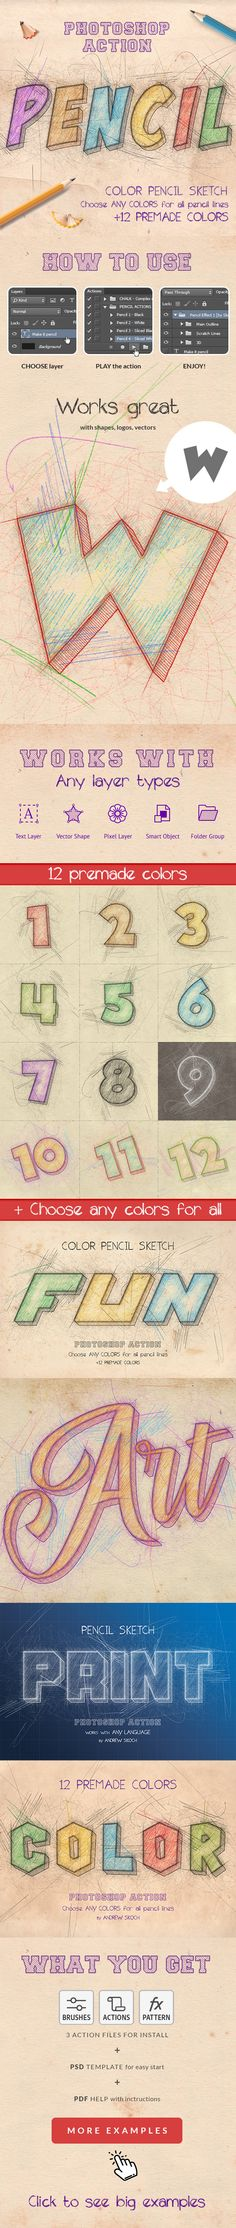 Pencil Text Effects Photoshop Text Effects, Photoshop Actions, Color Pencil Sketch, Logo Sketches, Sketch Photoshop, Sketch 2, Pencil Writing, Retail Logo, Vector Shapes